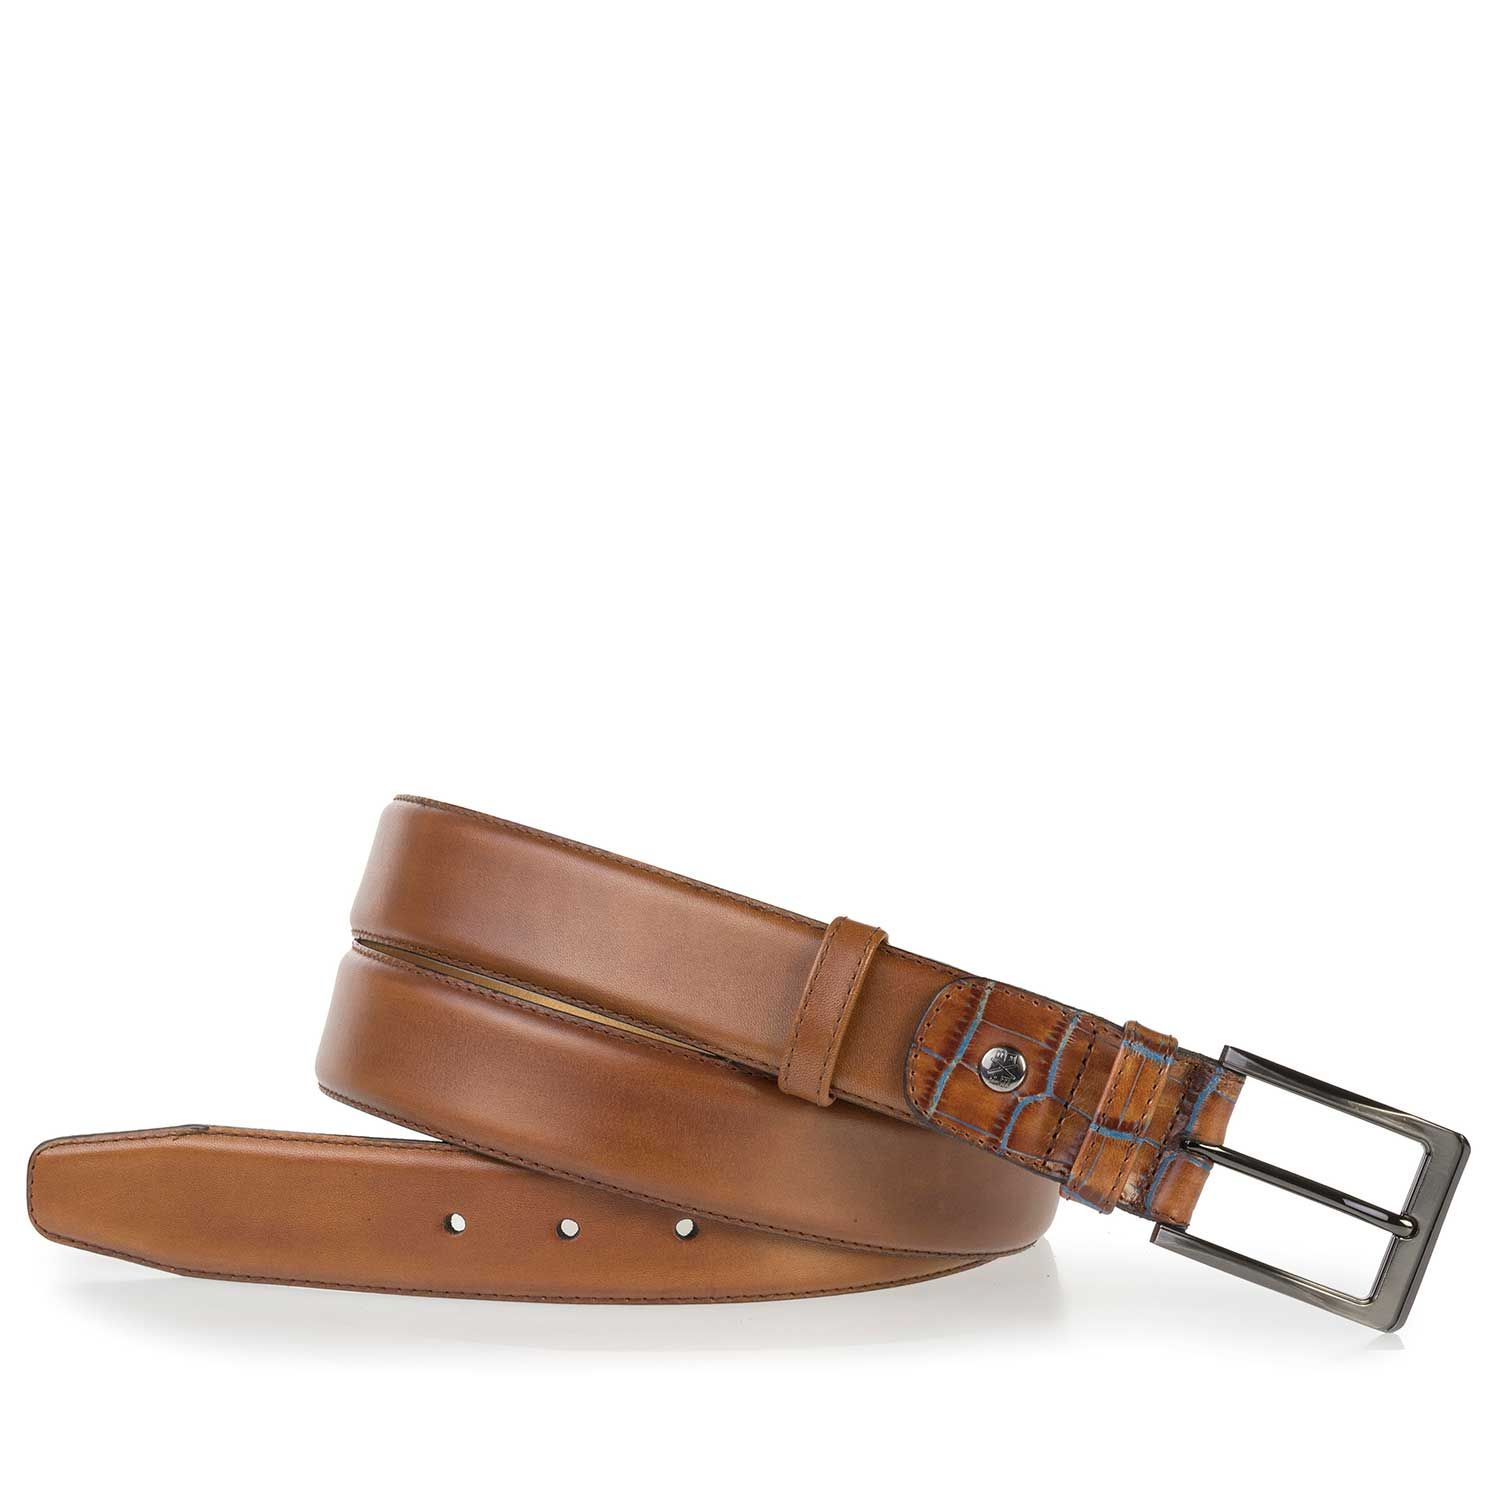 75055/00 - Cognac calf's leather belt